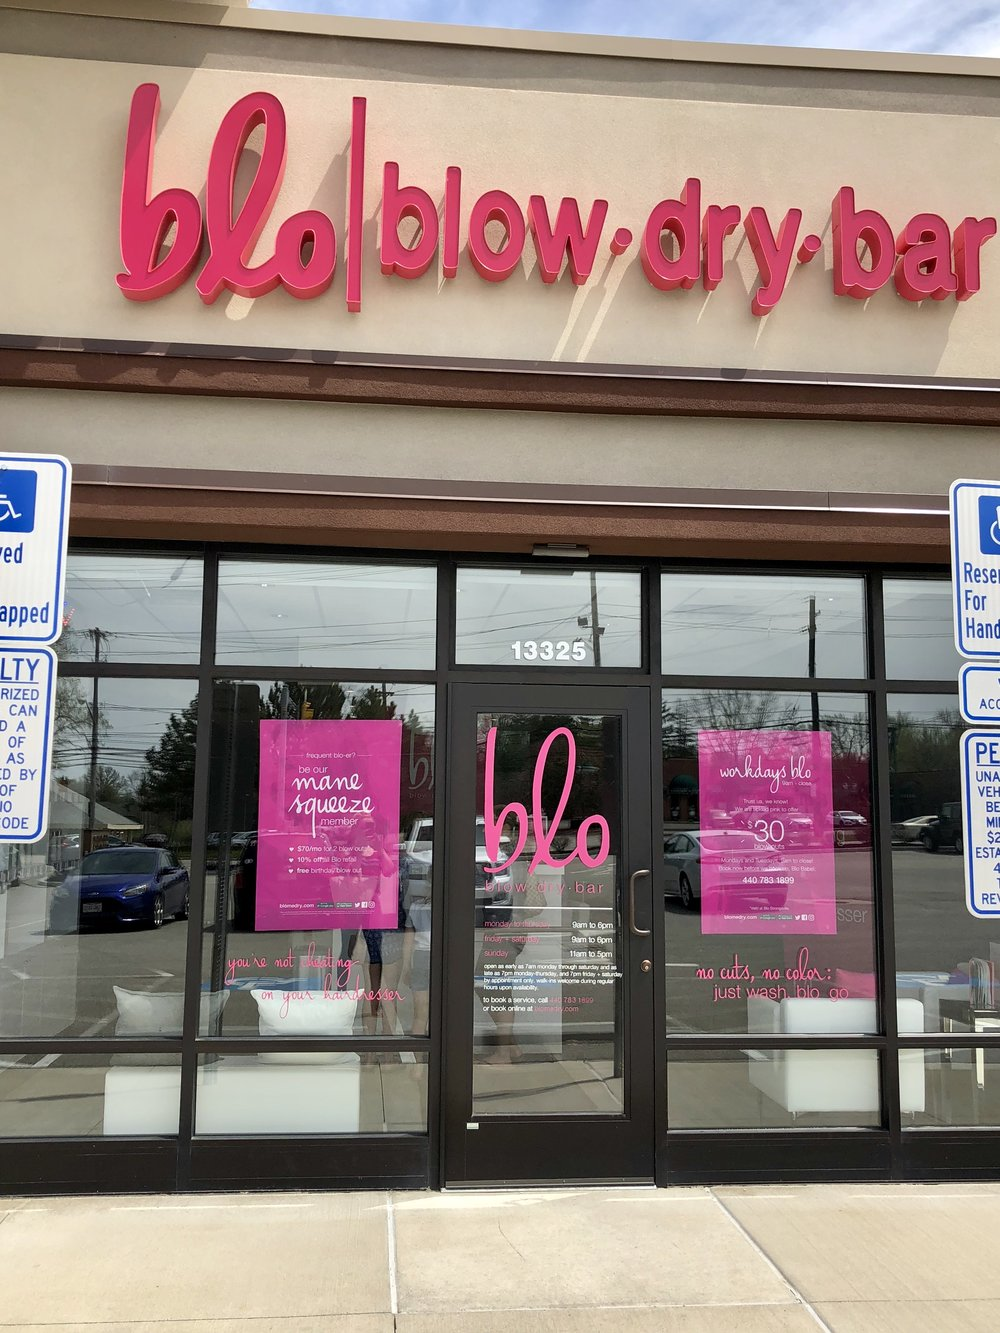 The storefront of Blo Blow Dry Bar